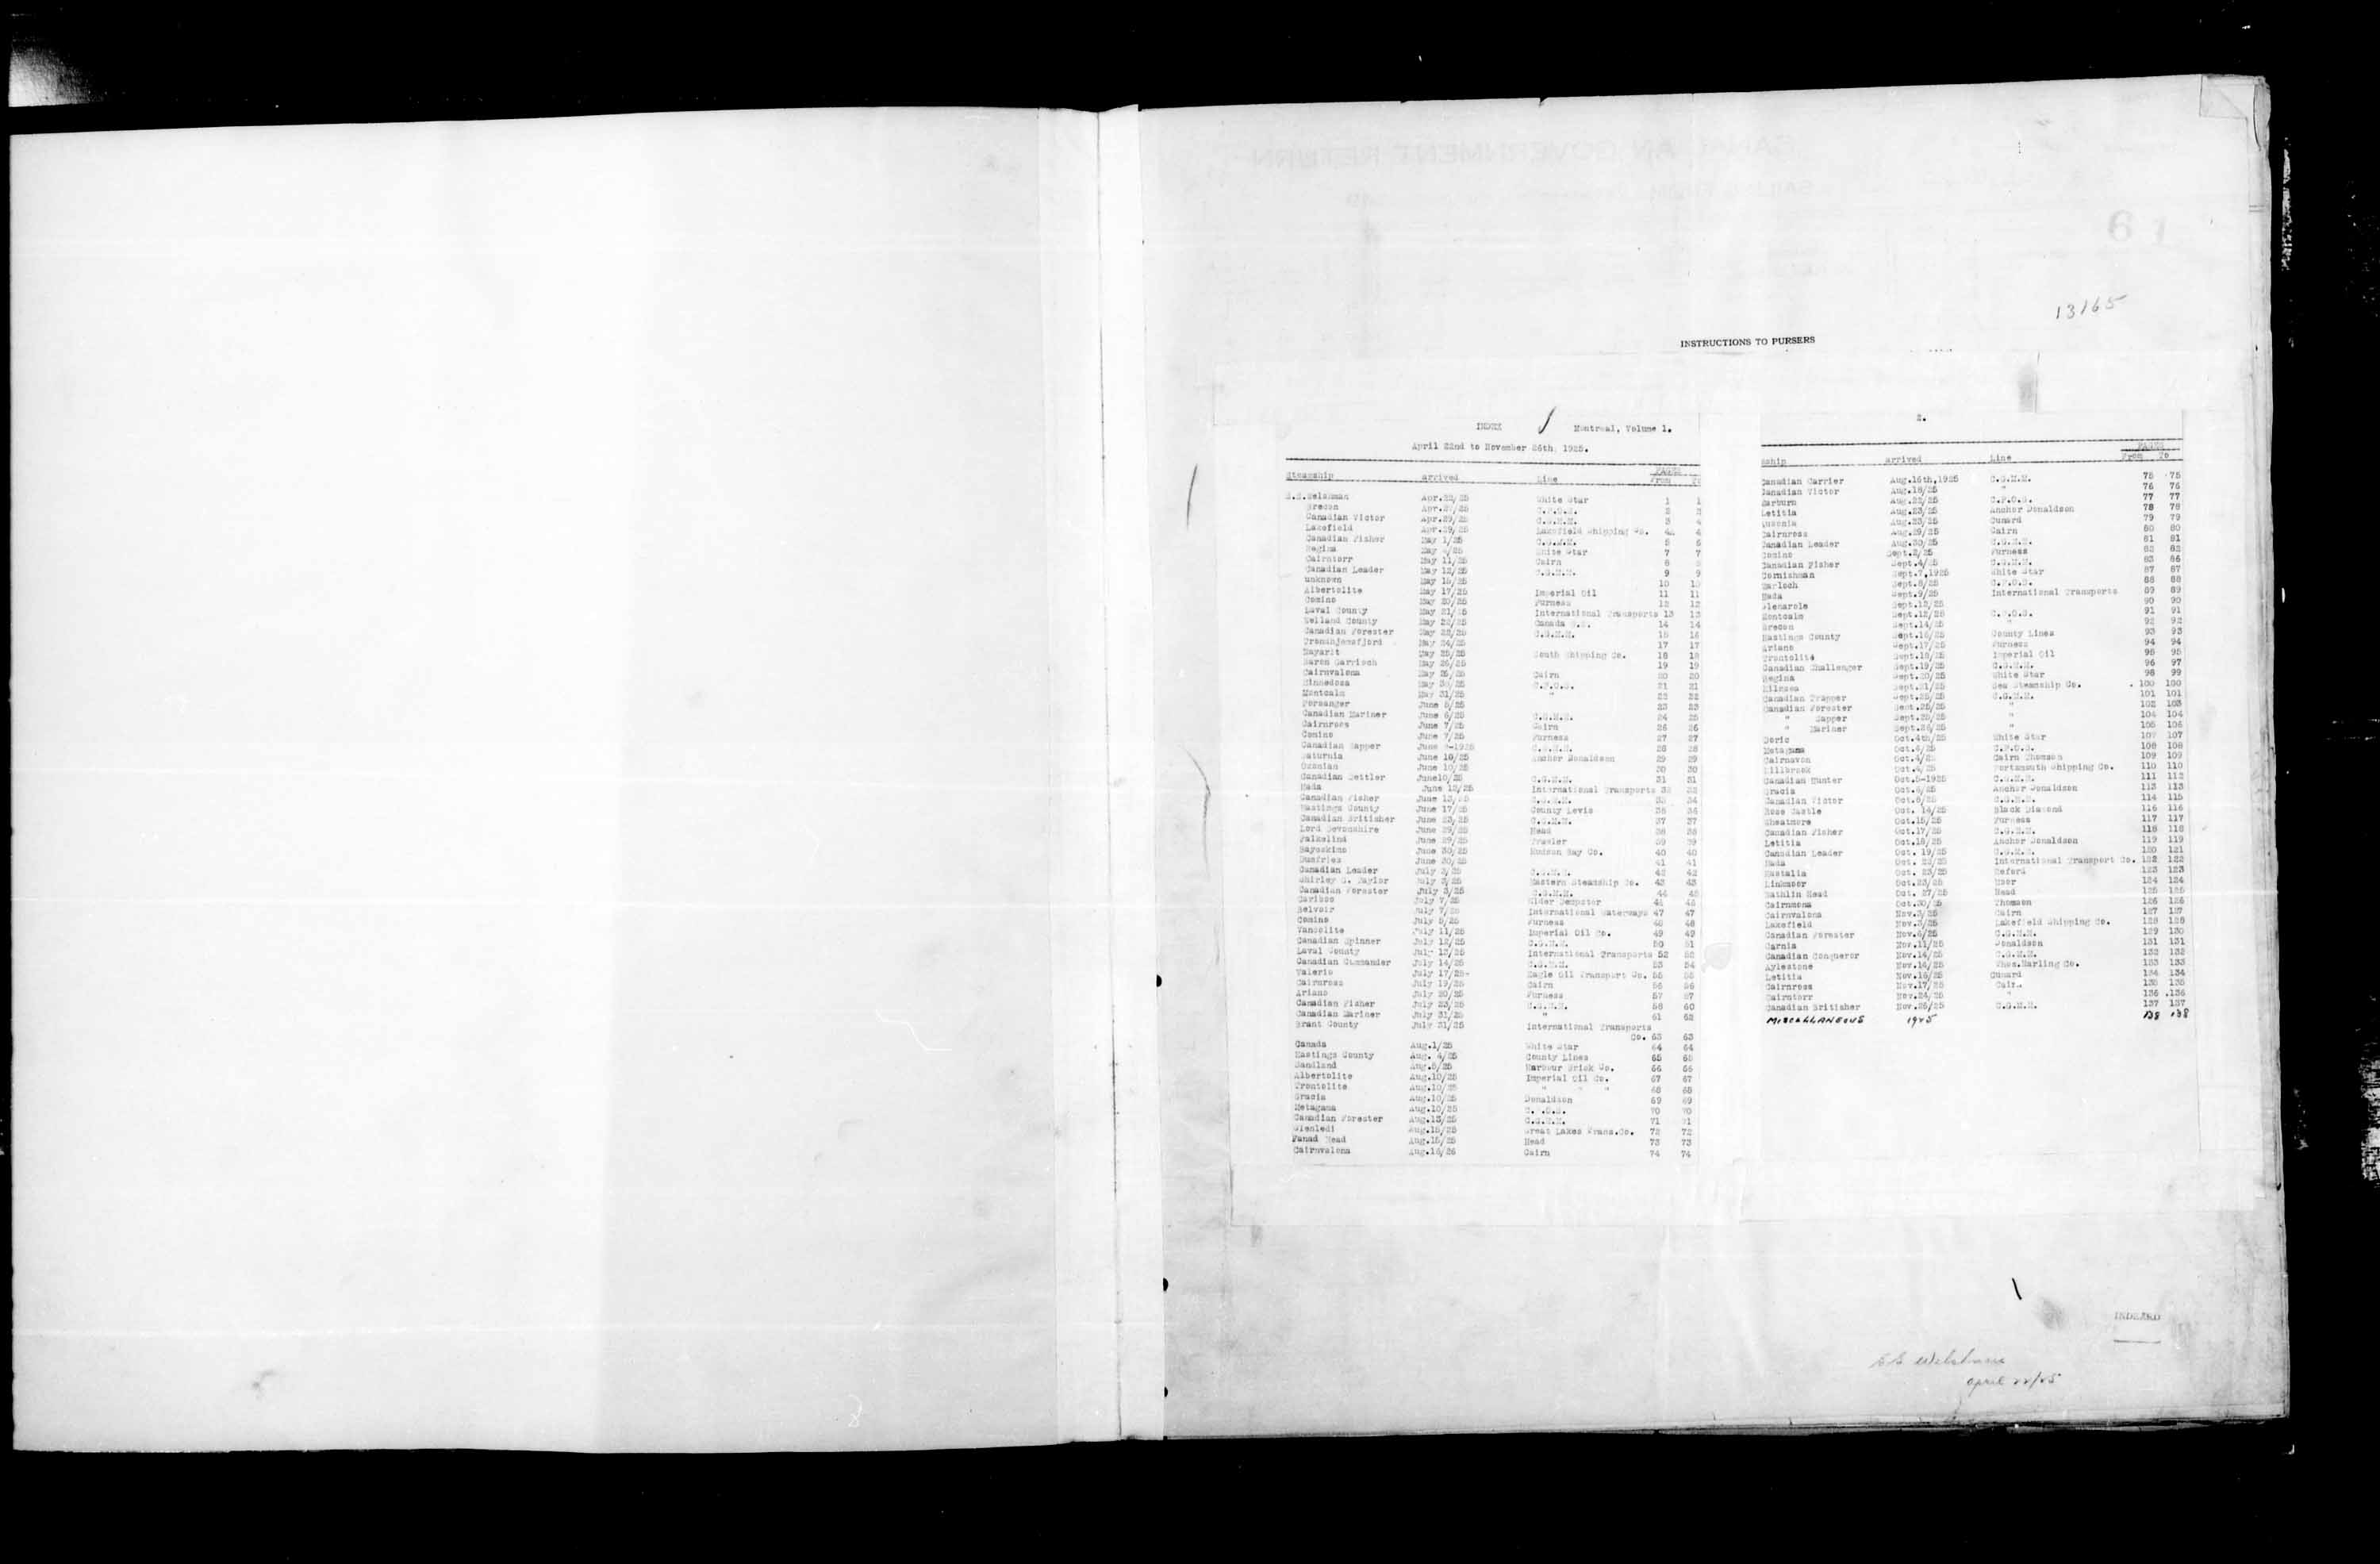 Title: Passenger Lists: Montreal (1925-1935) - Mikan Number: 134839 - Microform: t-14910